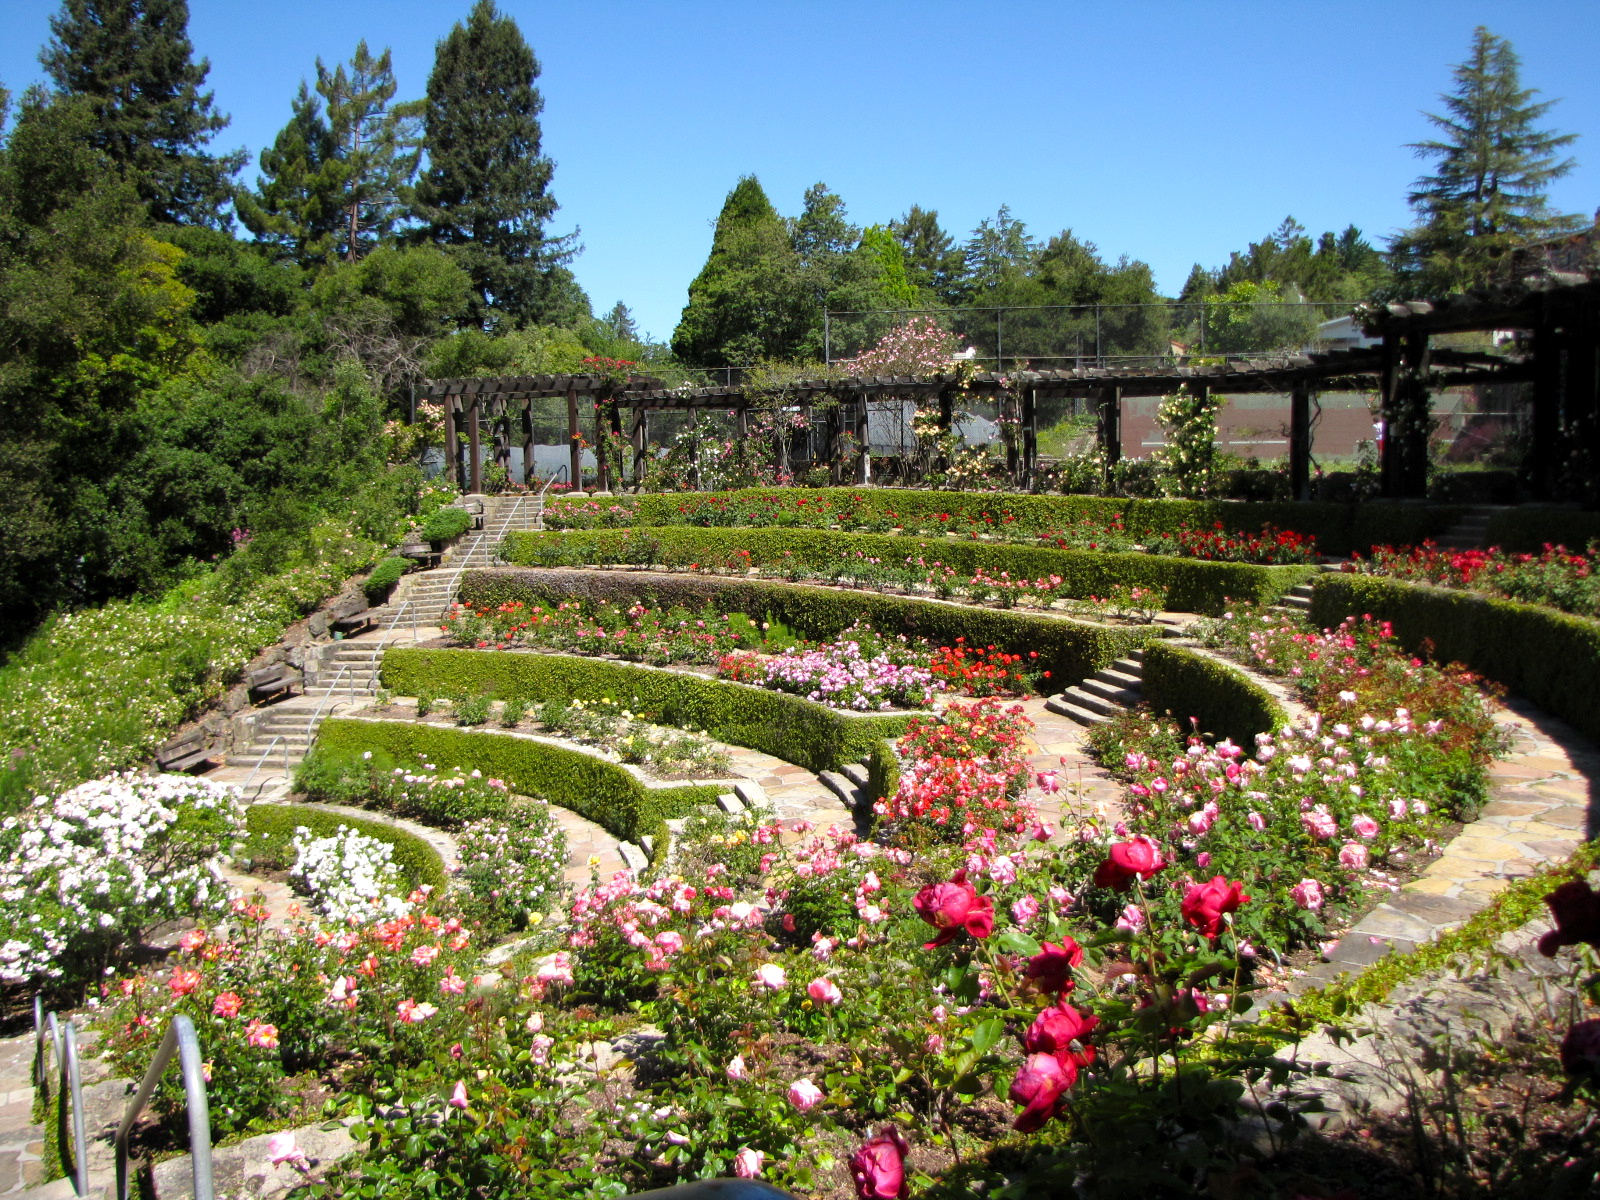 A wonderful day at the berkeley rose garden Berkeley rose garden